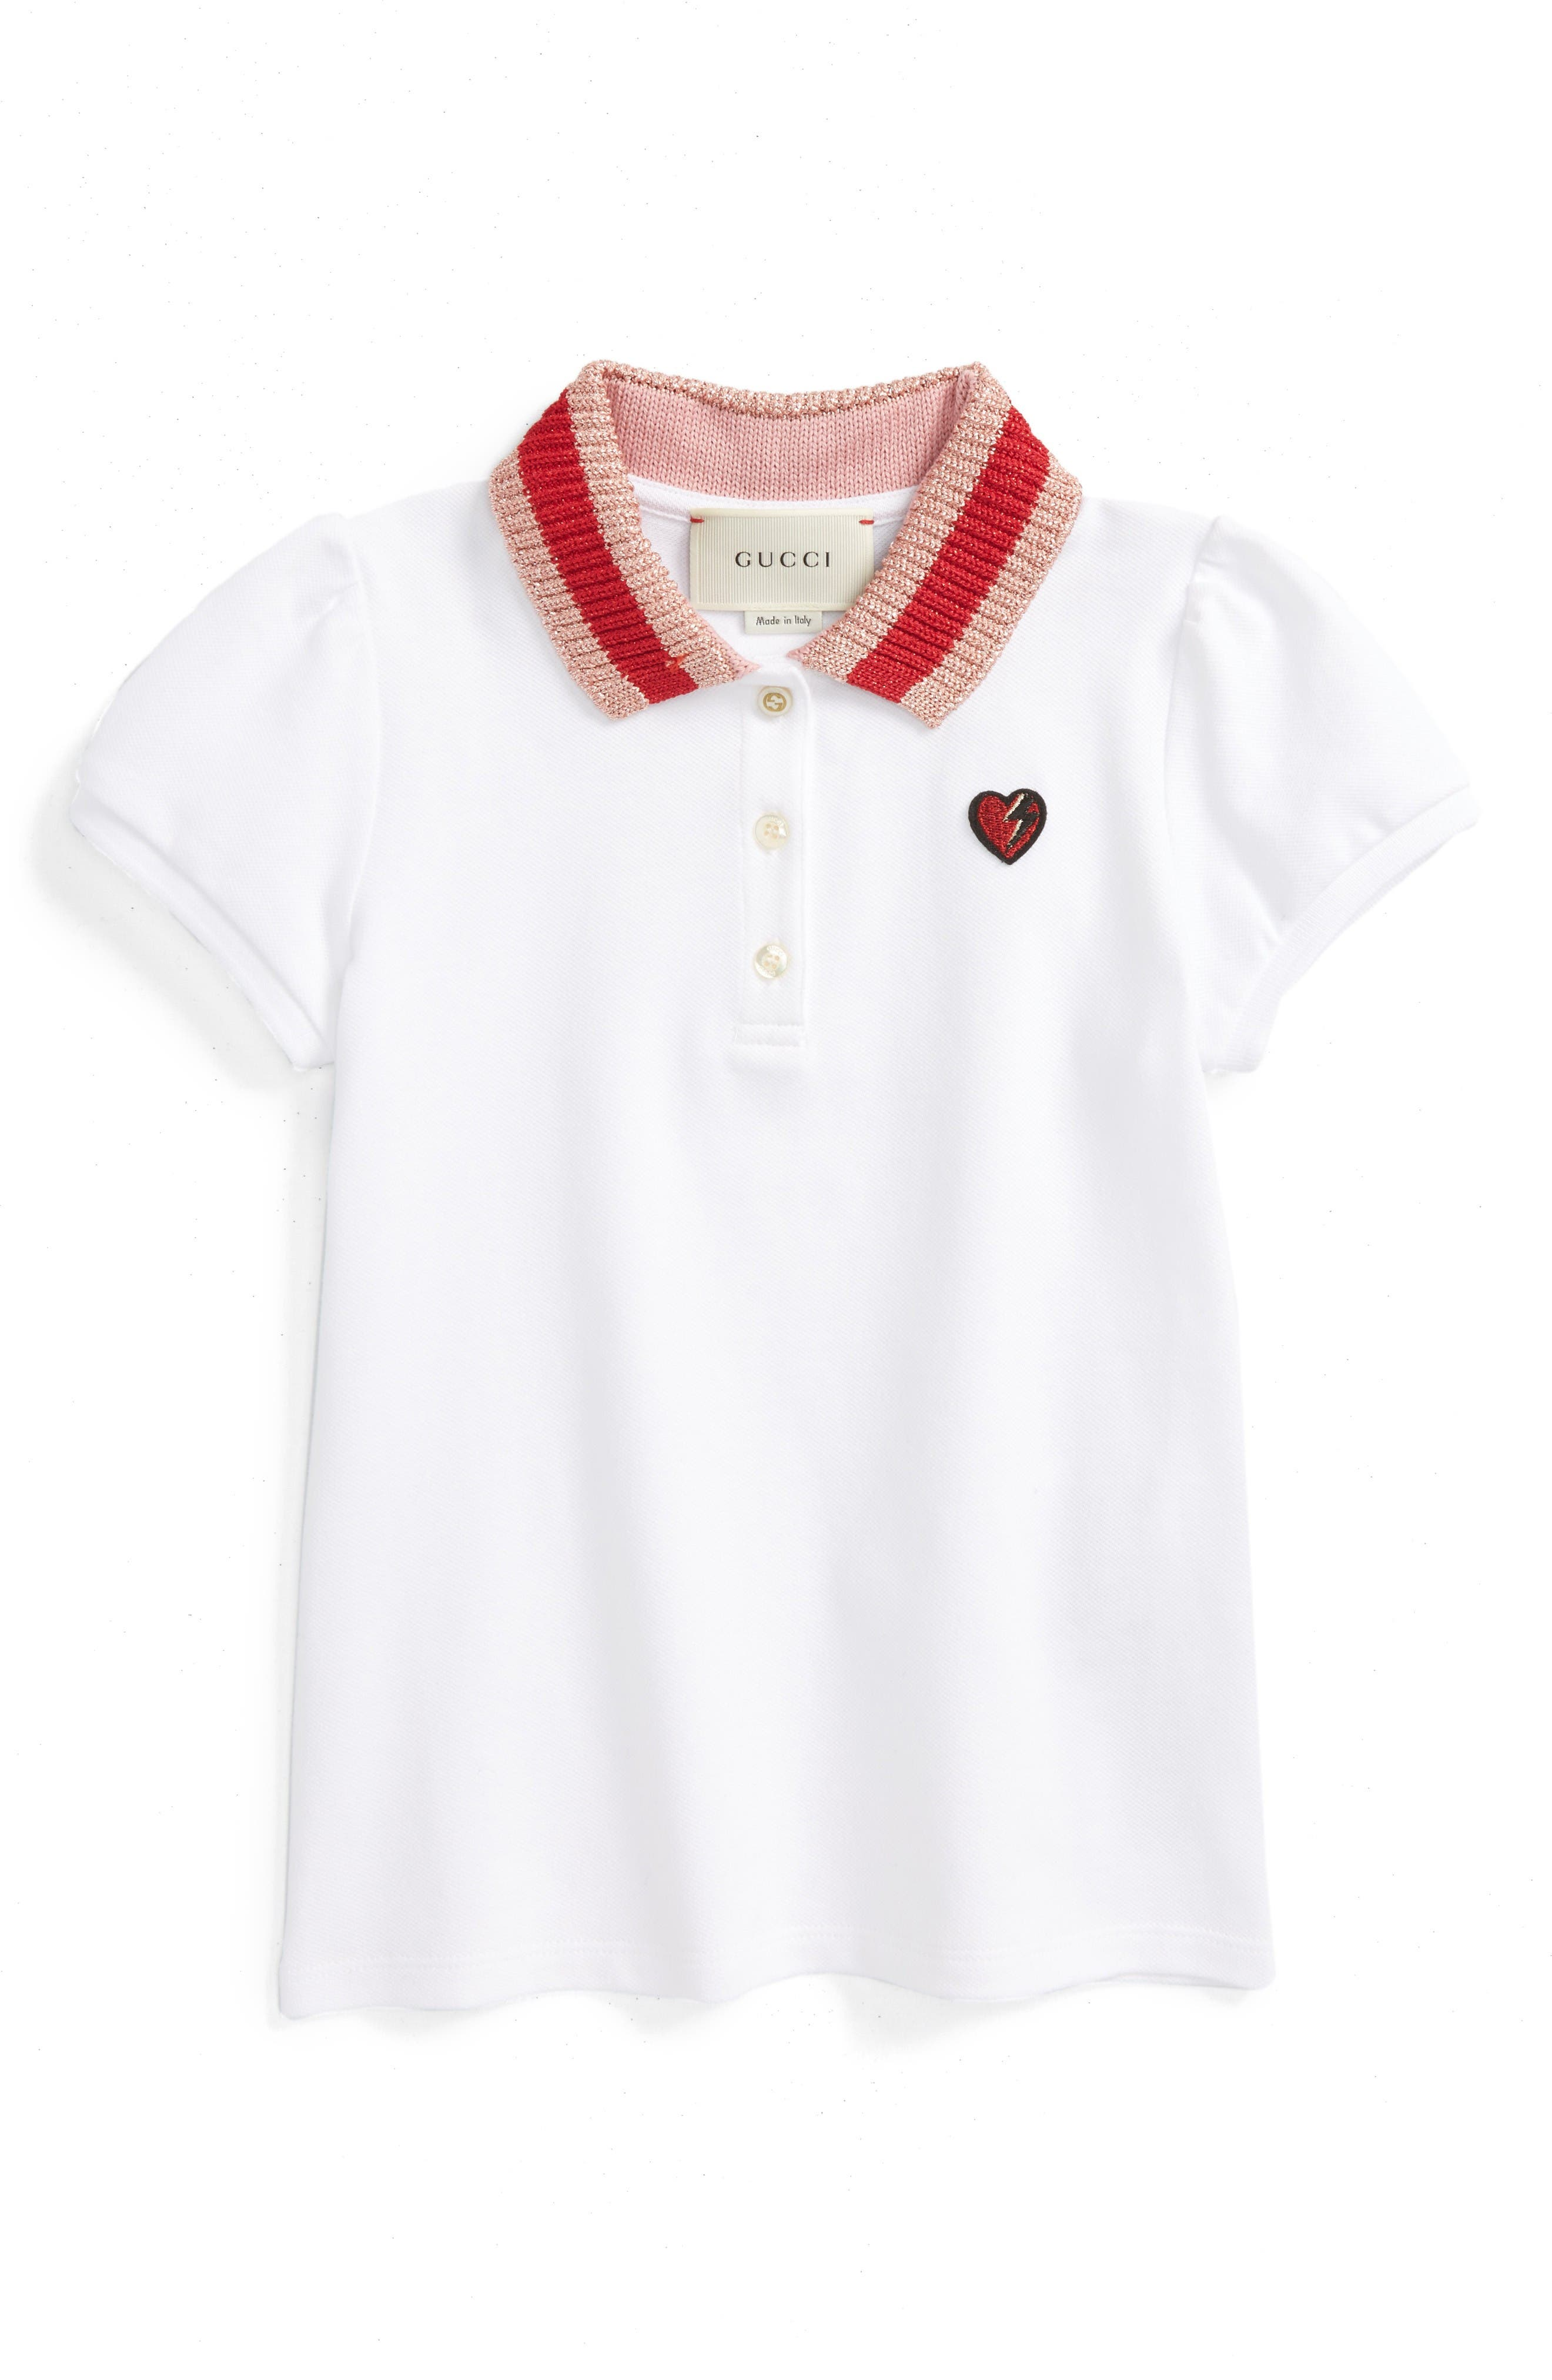 Main Image - Gucci Heart Embroidered Polo (Little Girls & Big Girls)